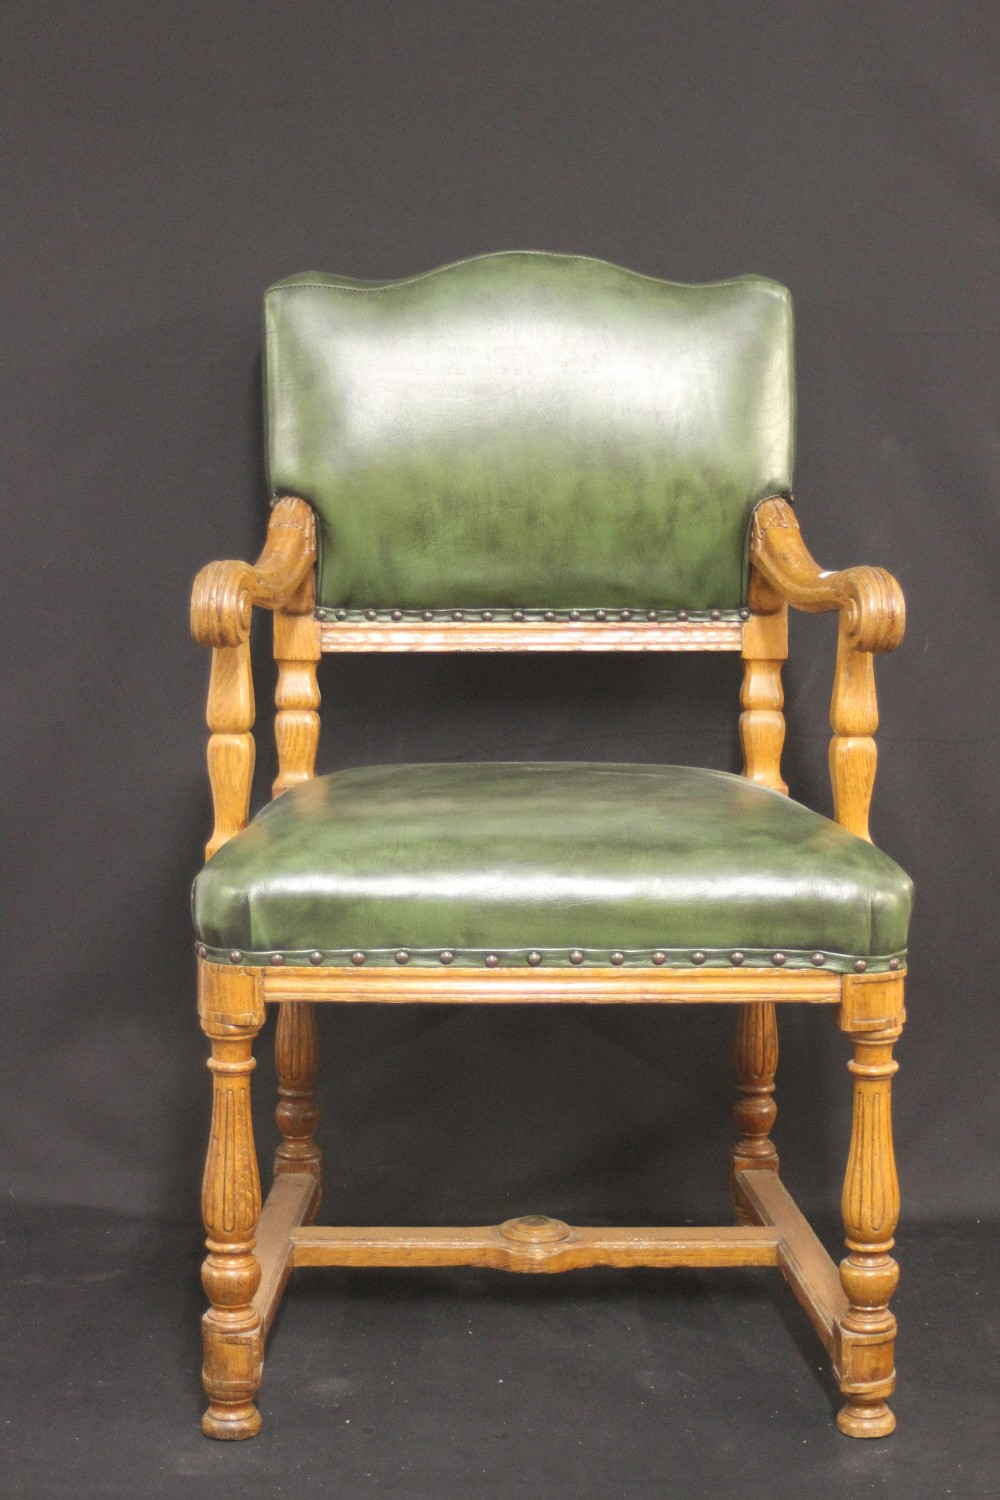 R M S Olympic Extremely Rare First Class Dining Saloon Chair Created In The Jacobean Style And